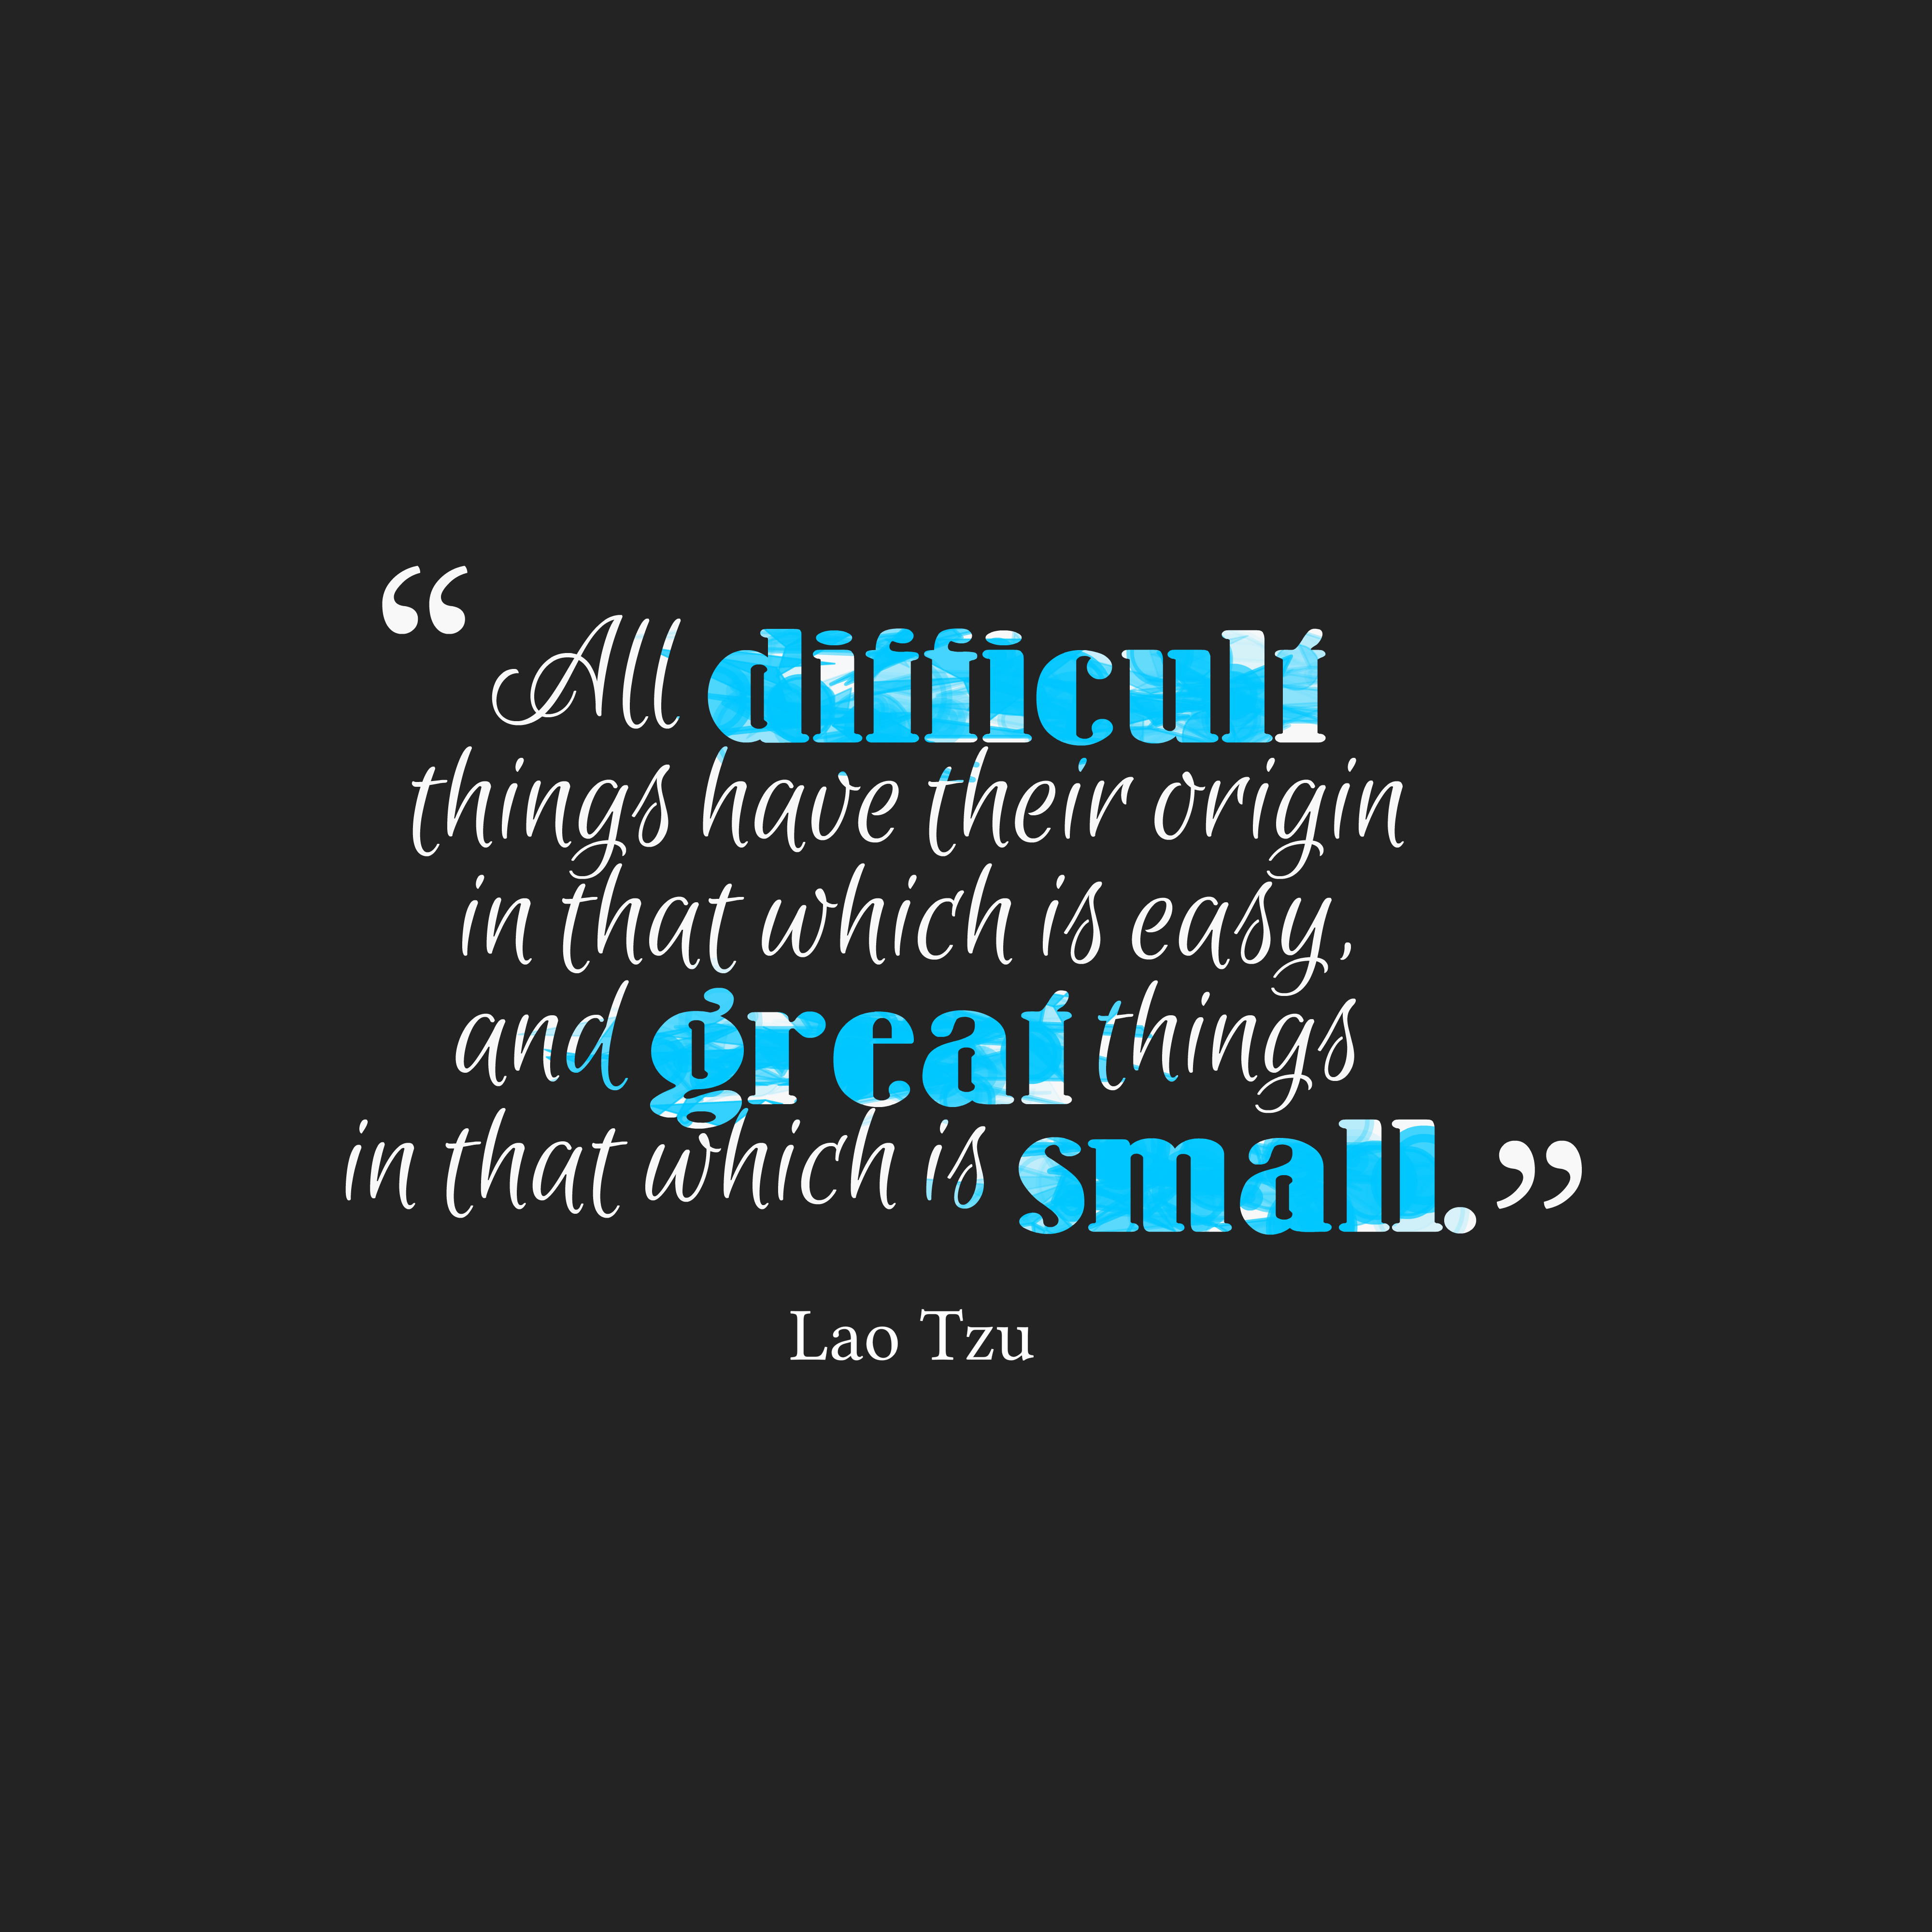 Quotes image of All difficult things have their origin in that which is easy, and great things in that which is small.